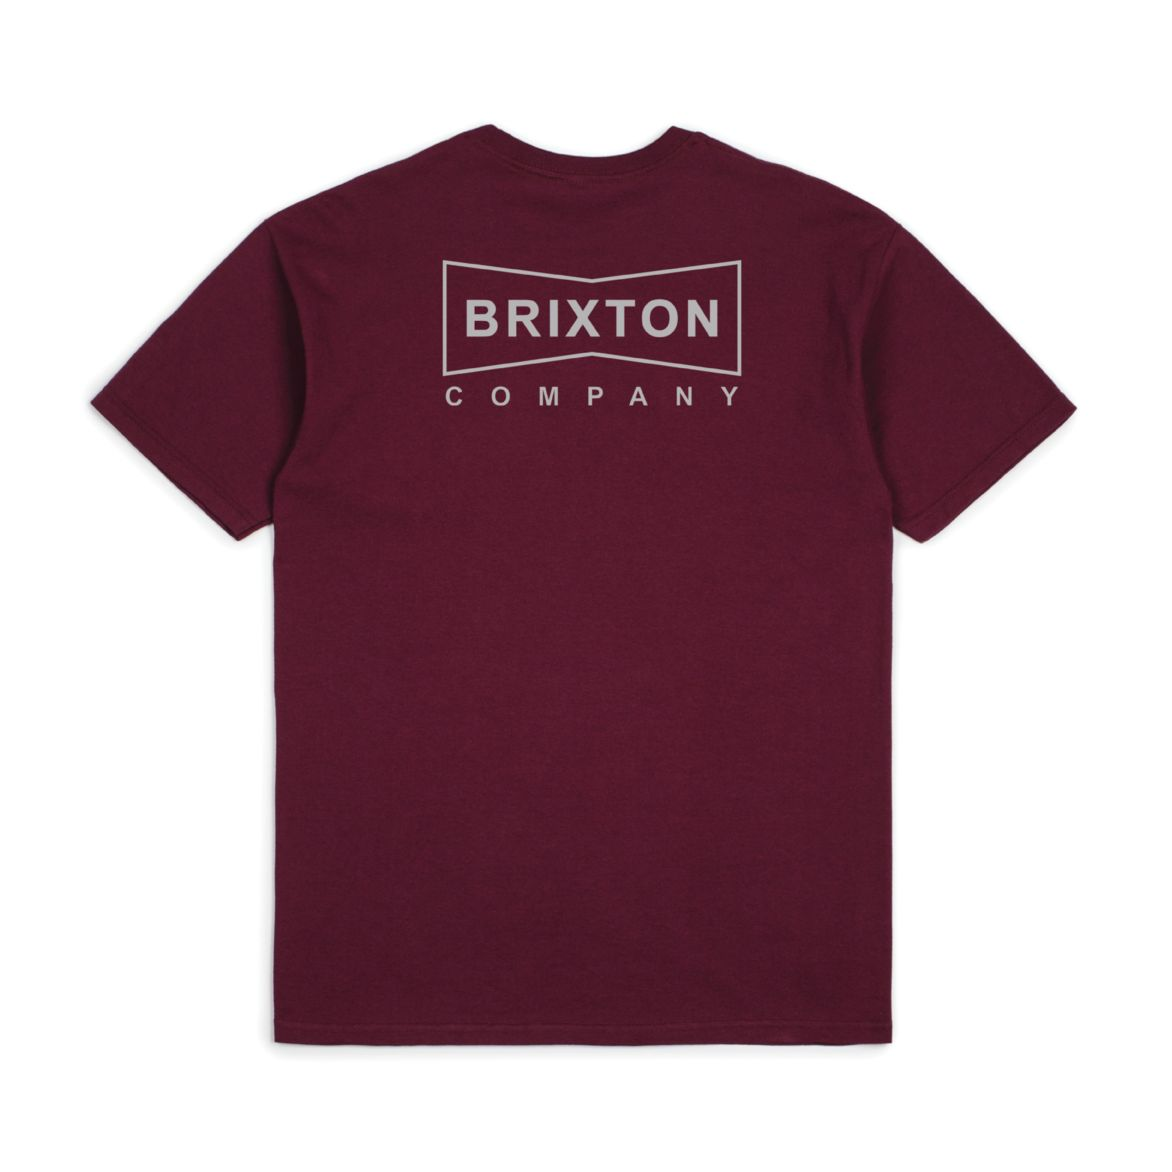 Brixton Wedge T-Shirt - 88 Gear